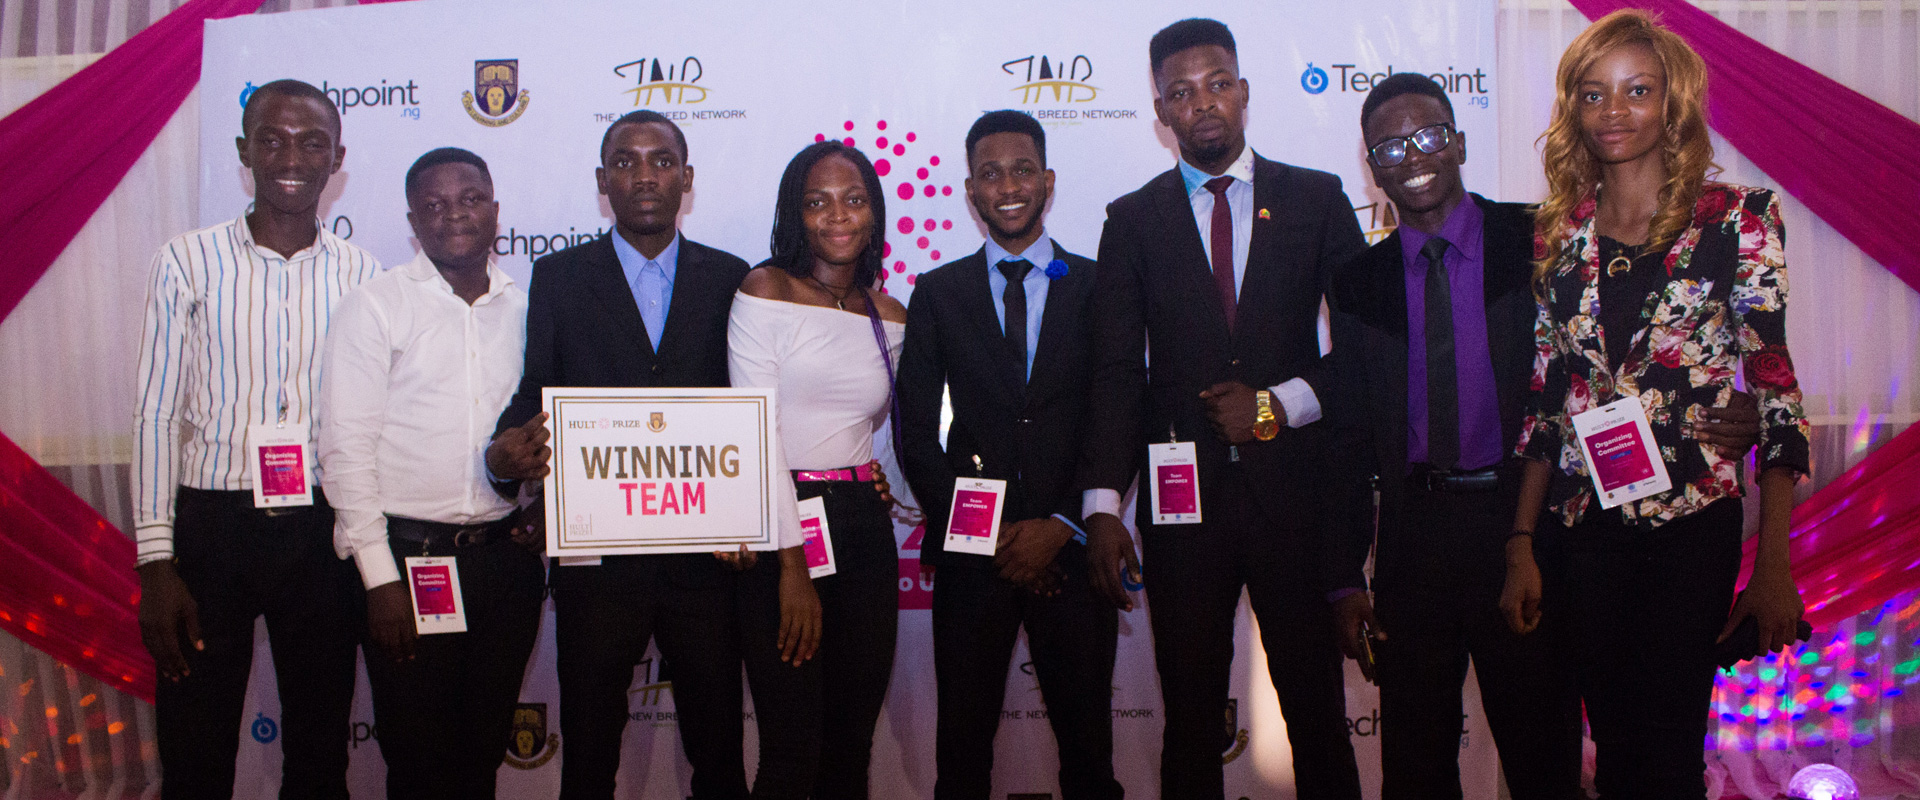 OAU Student Entrepreneurs advance to the Semi-Finals of the $1million Hult Prize Competition